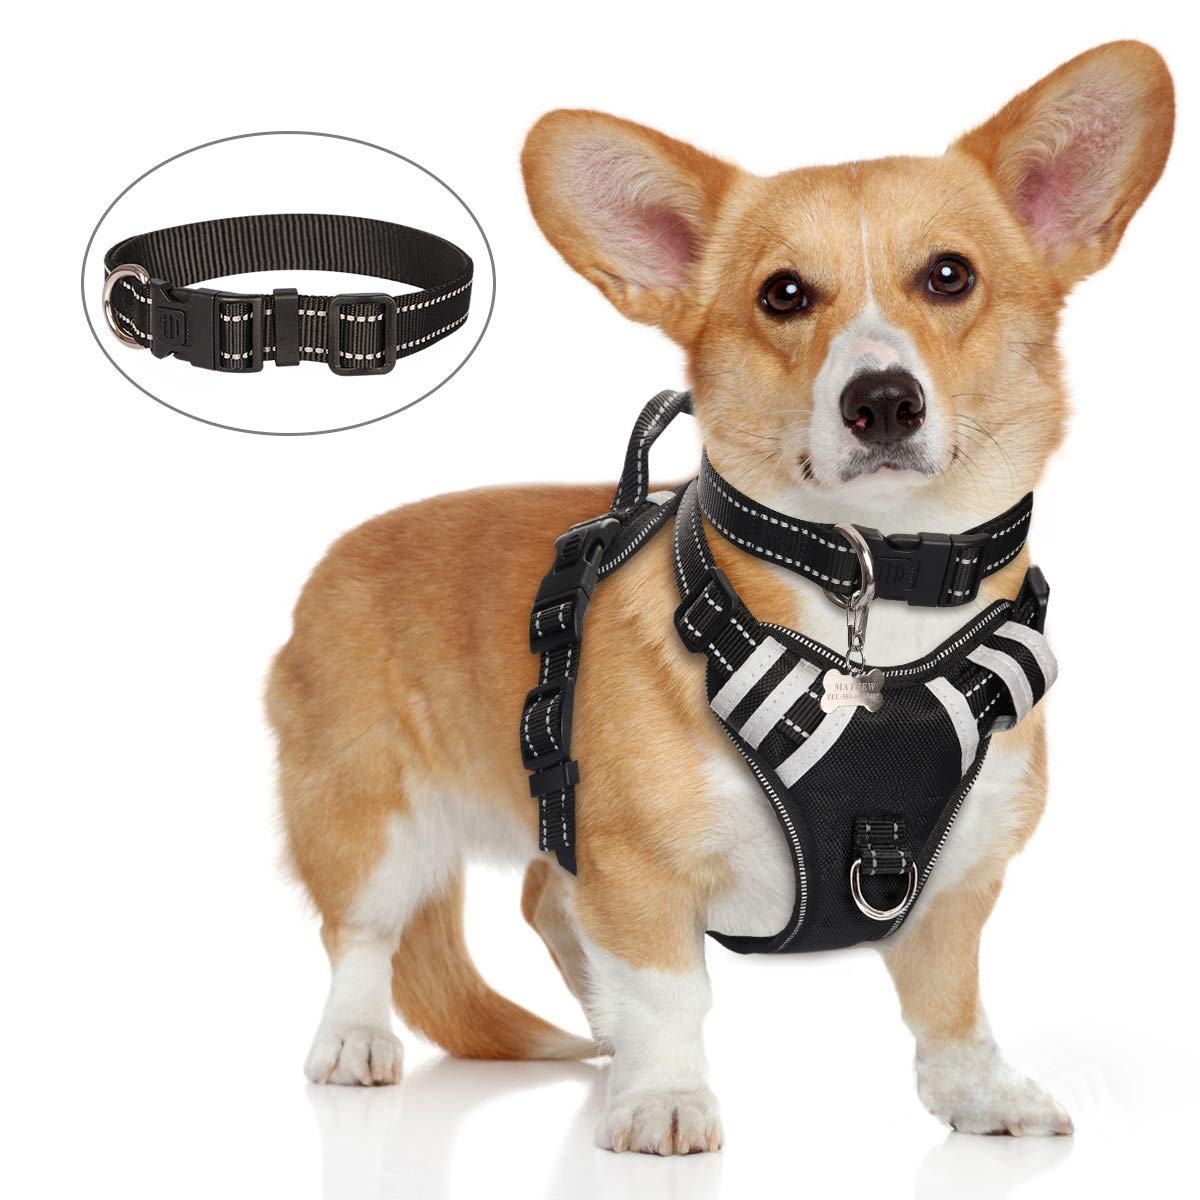 WINSEE Dog Harness No Pull, Pet Harnesses with Dog Collar, Adjustable Reflective Oxford Outdoor Vest, Front/Back Leash…